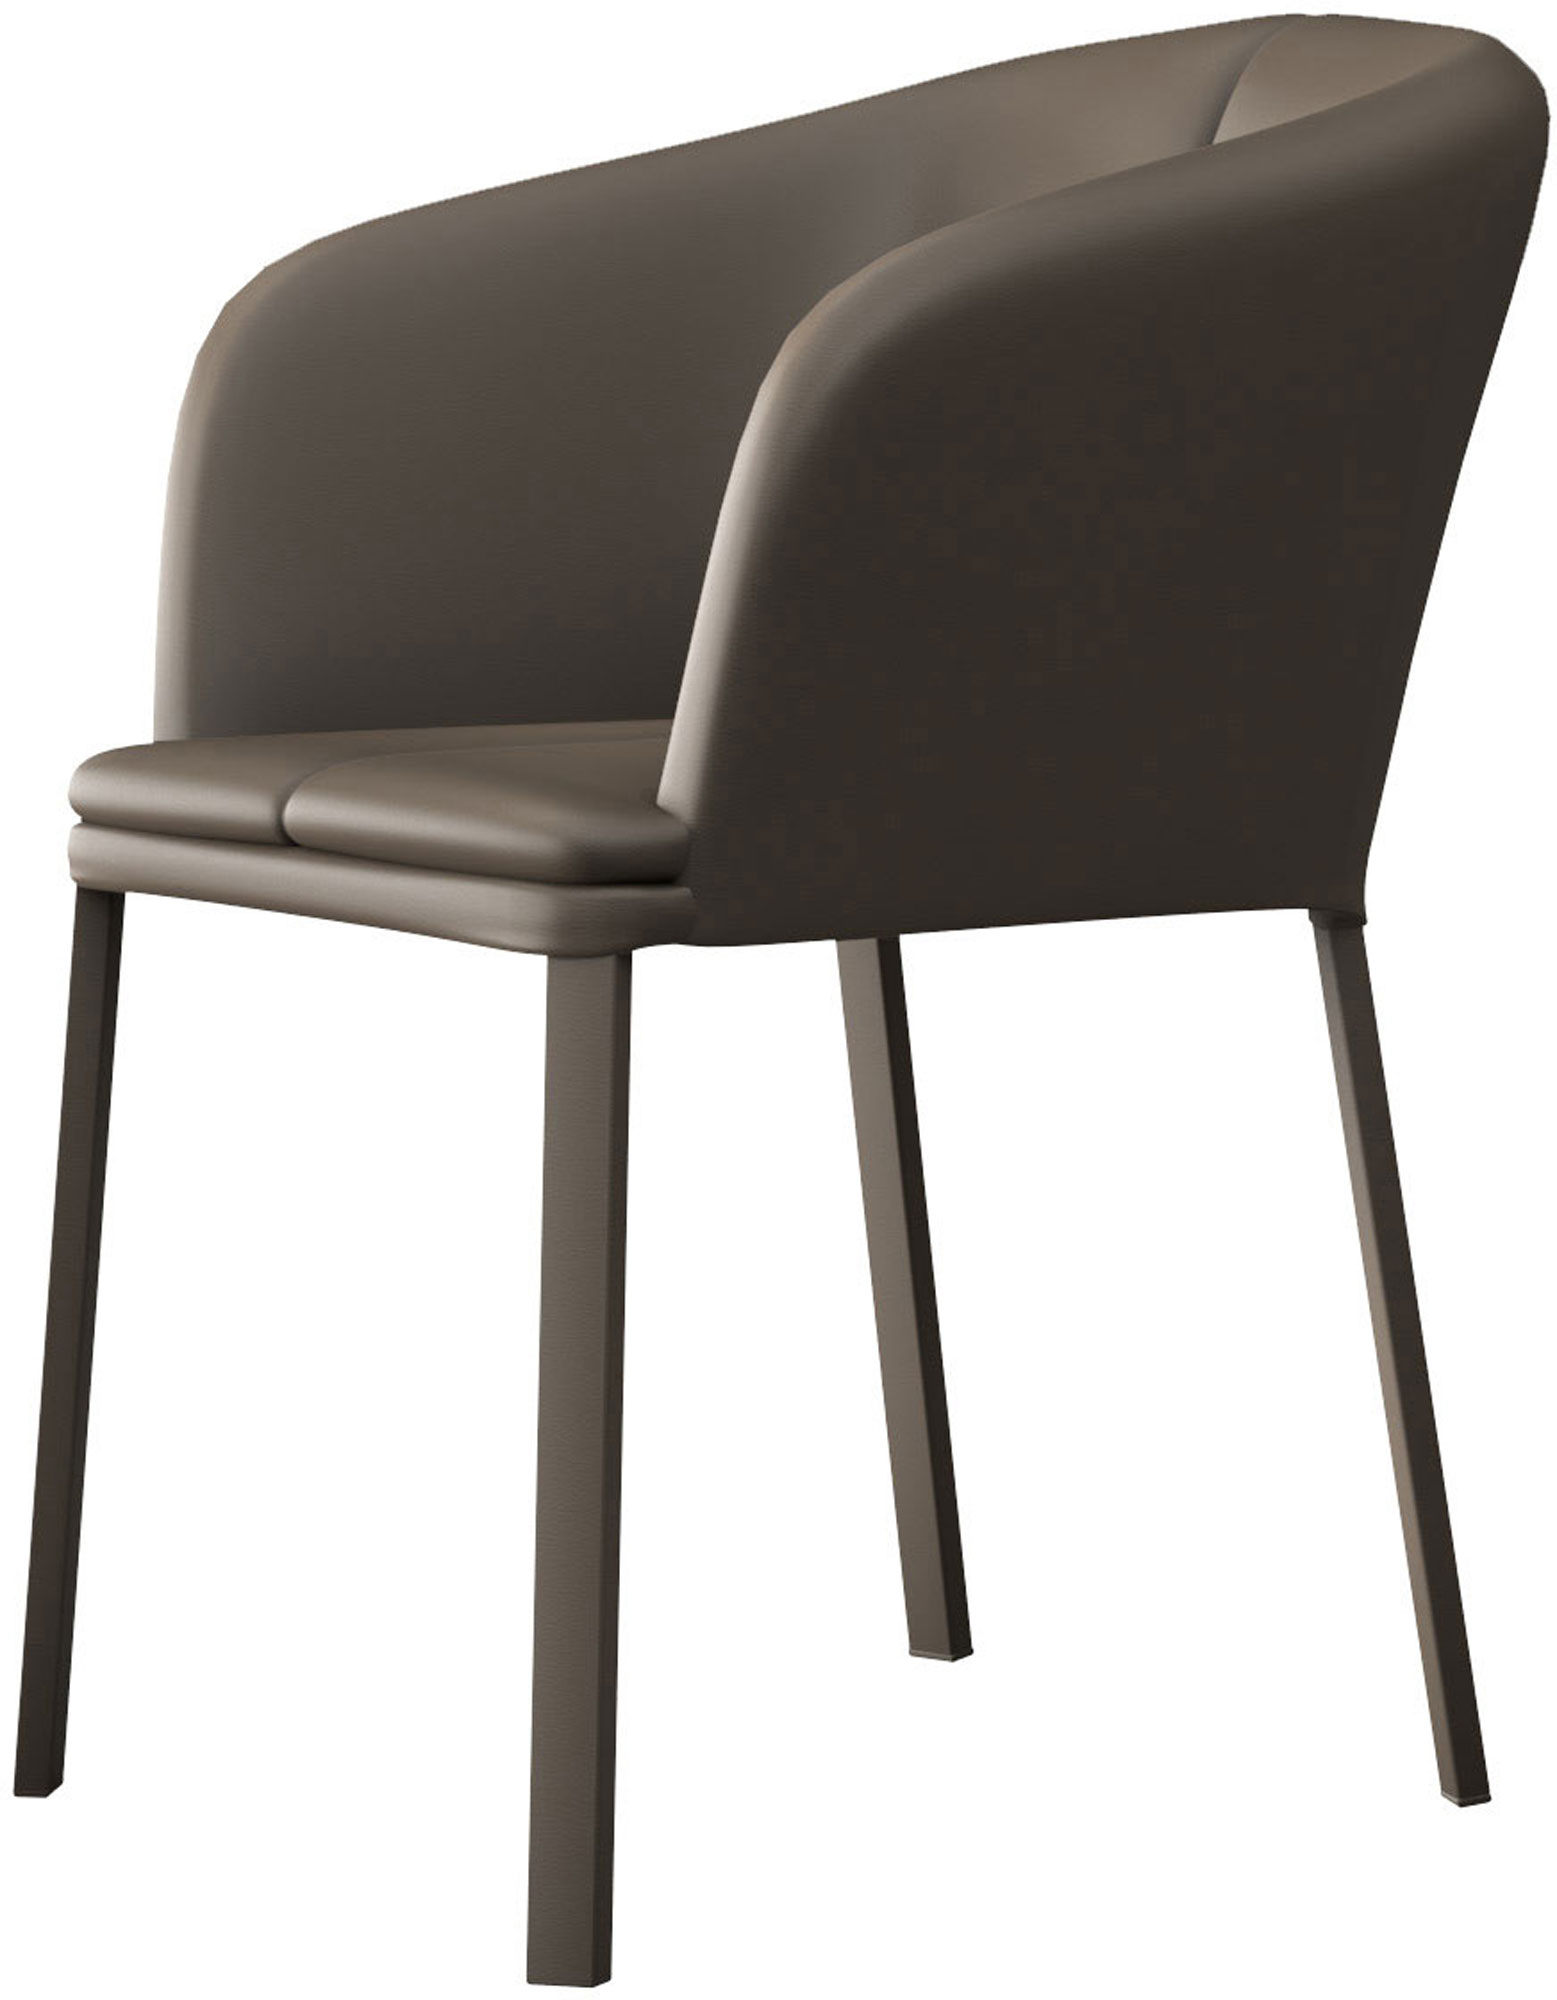 Fantastic Como Dining Chair Metro Element Andrewgaddart Wooden Chair Designs For Living Room Andrewgaddartcom